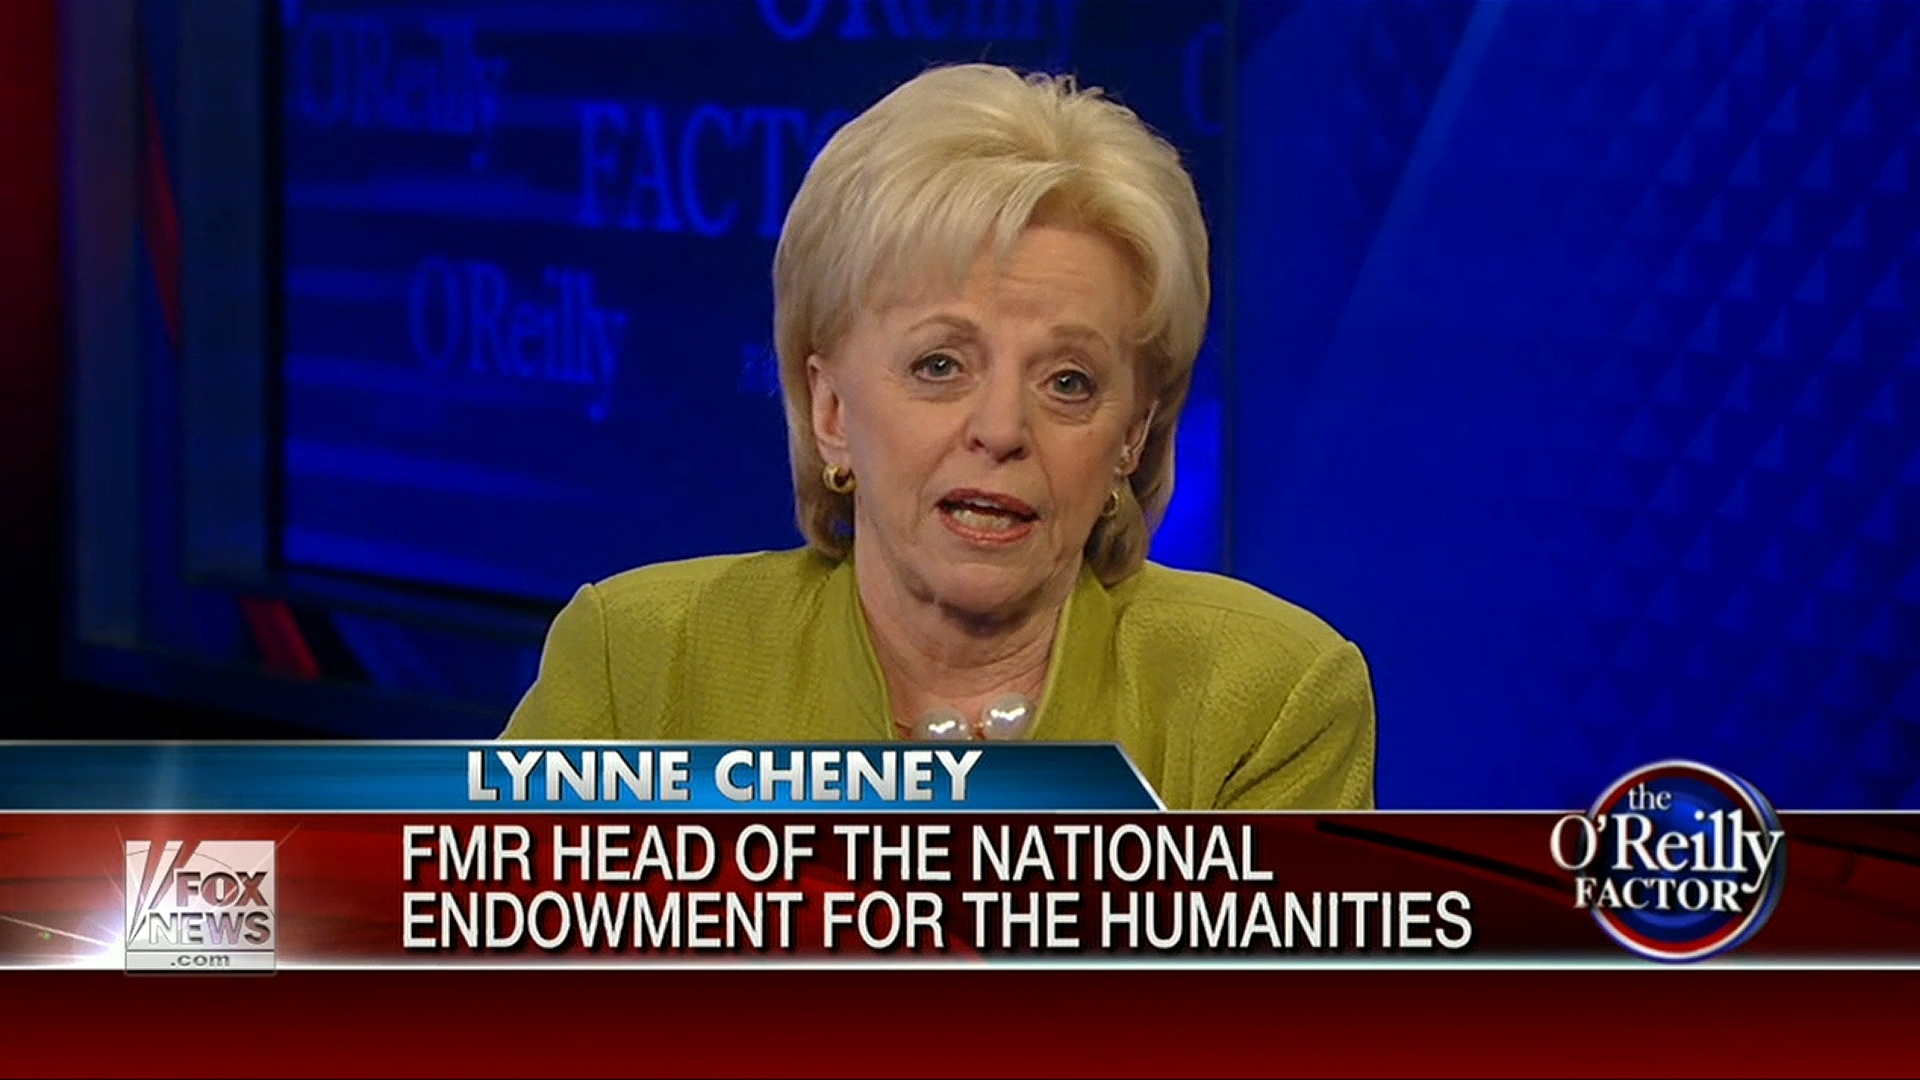 Lynne Cheney's Clinton conspiracy